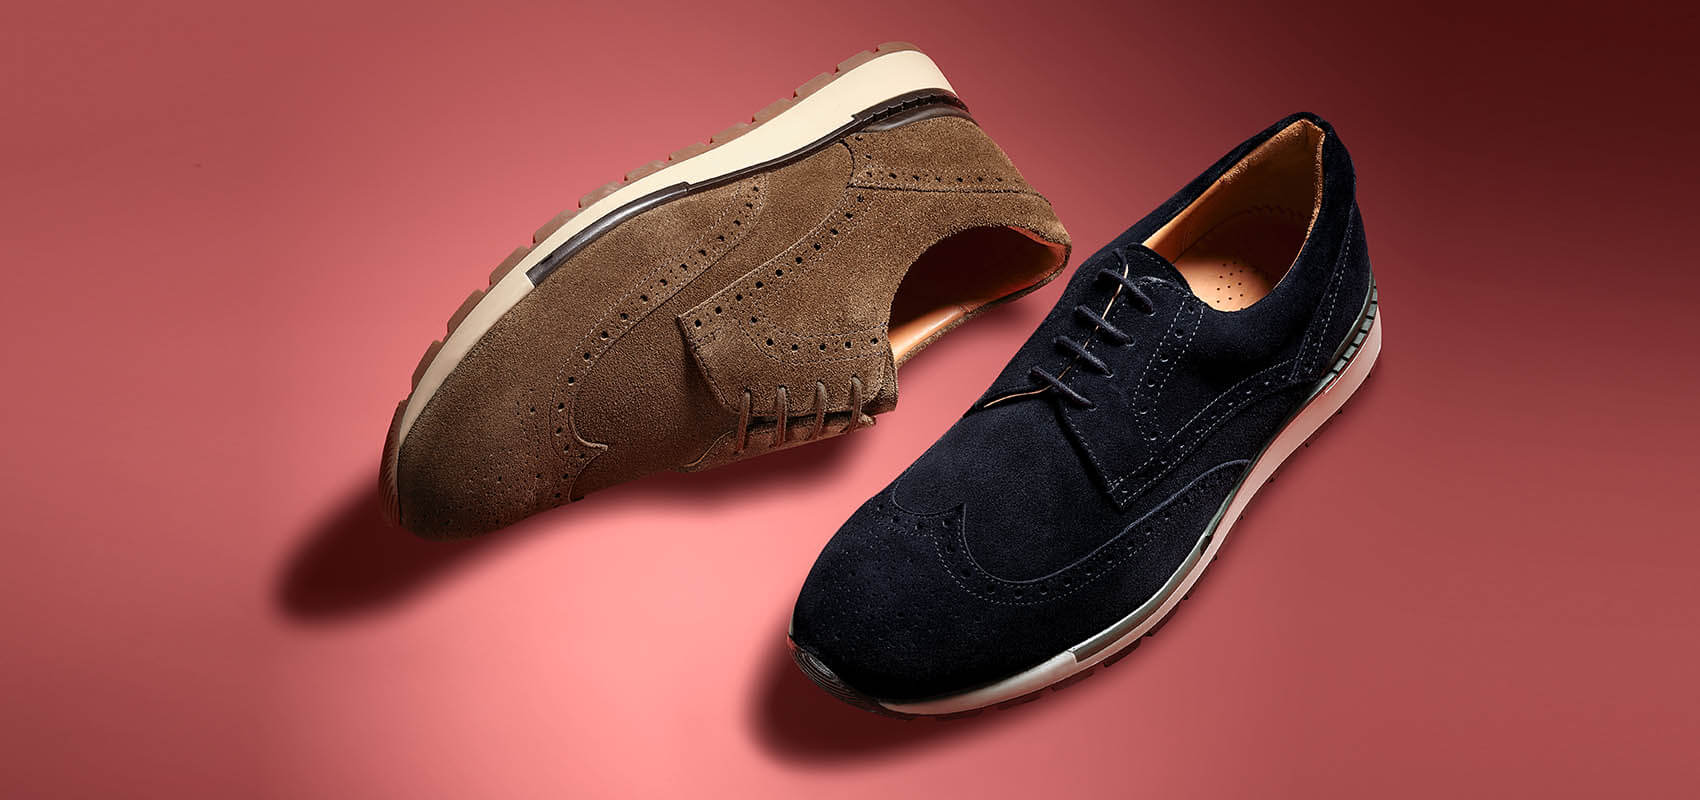 Charles Tyrwhitt Business Casual Shoes